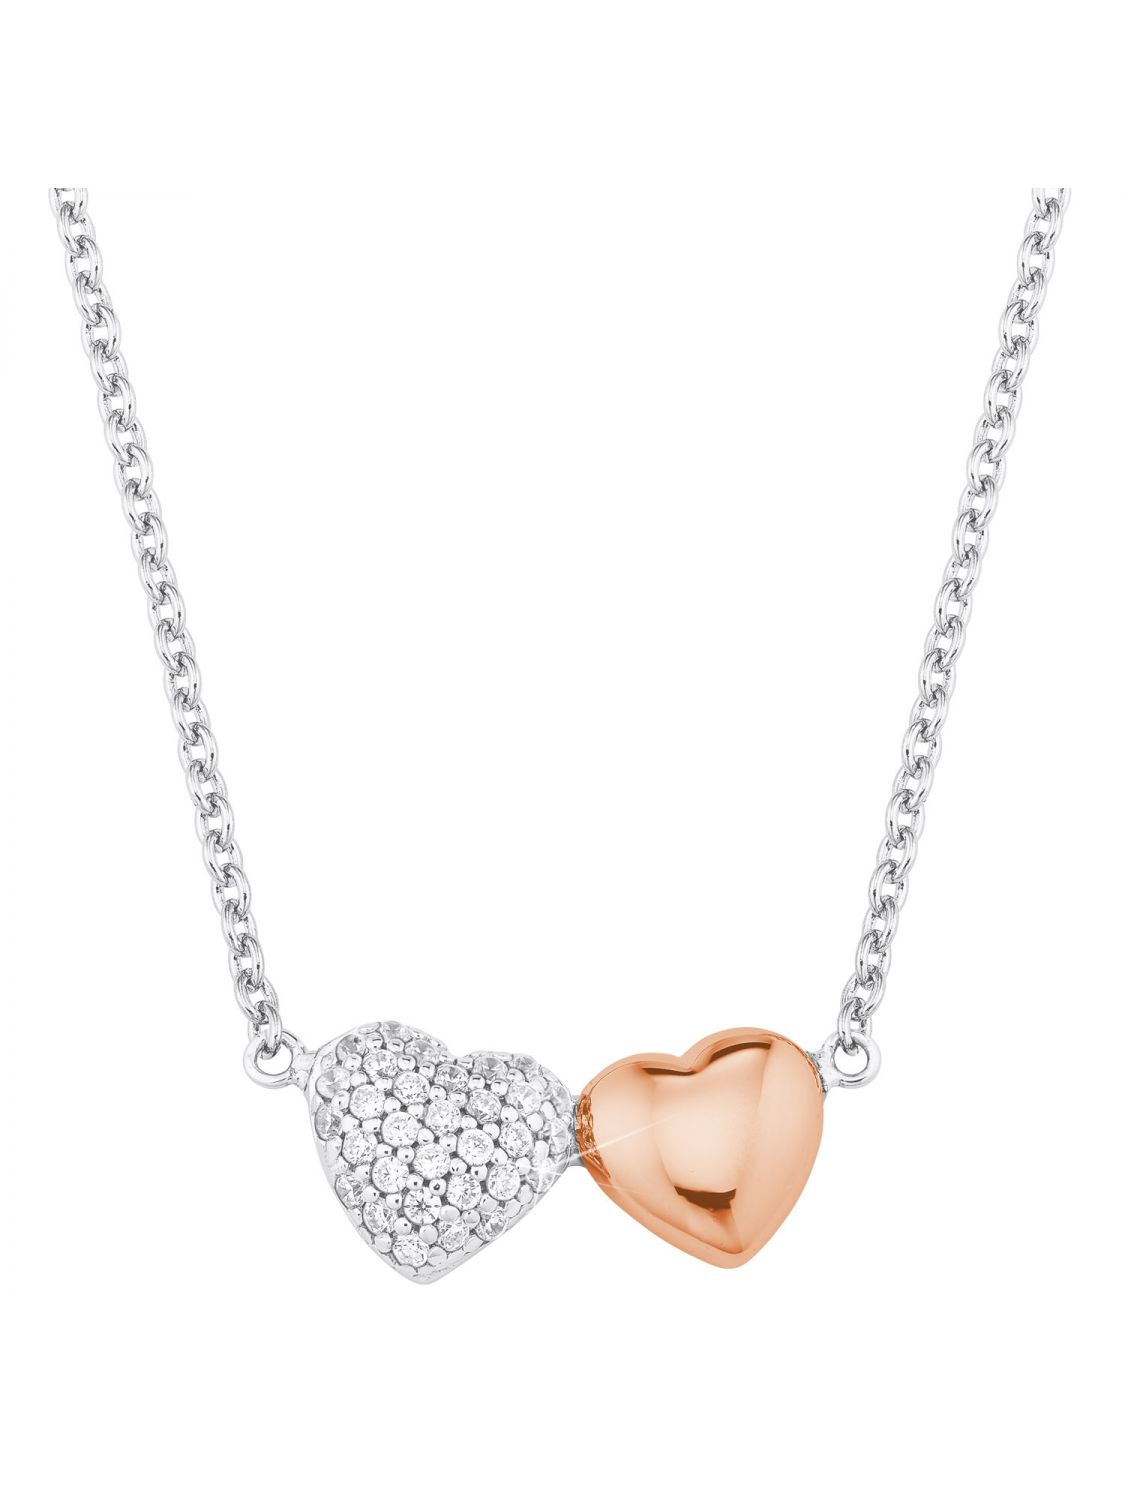 low priced 7bb7e 528b7 s.Oliver 2024207 Silver Ladies' Necklace with Heart Pendant